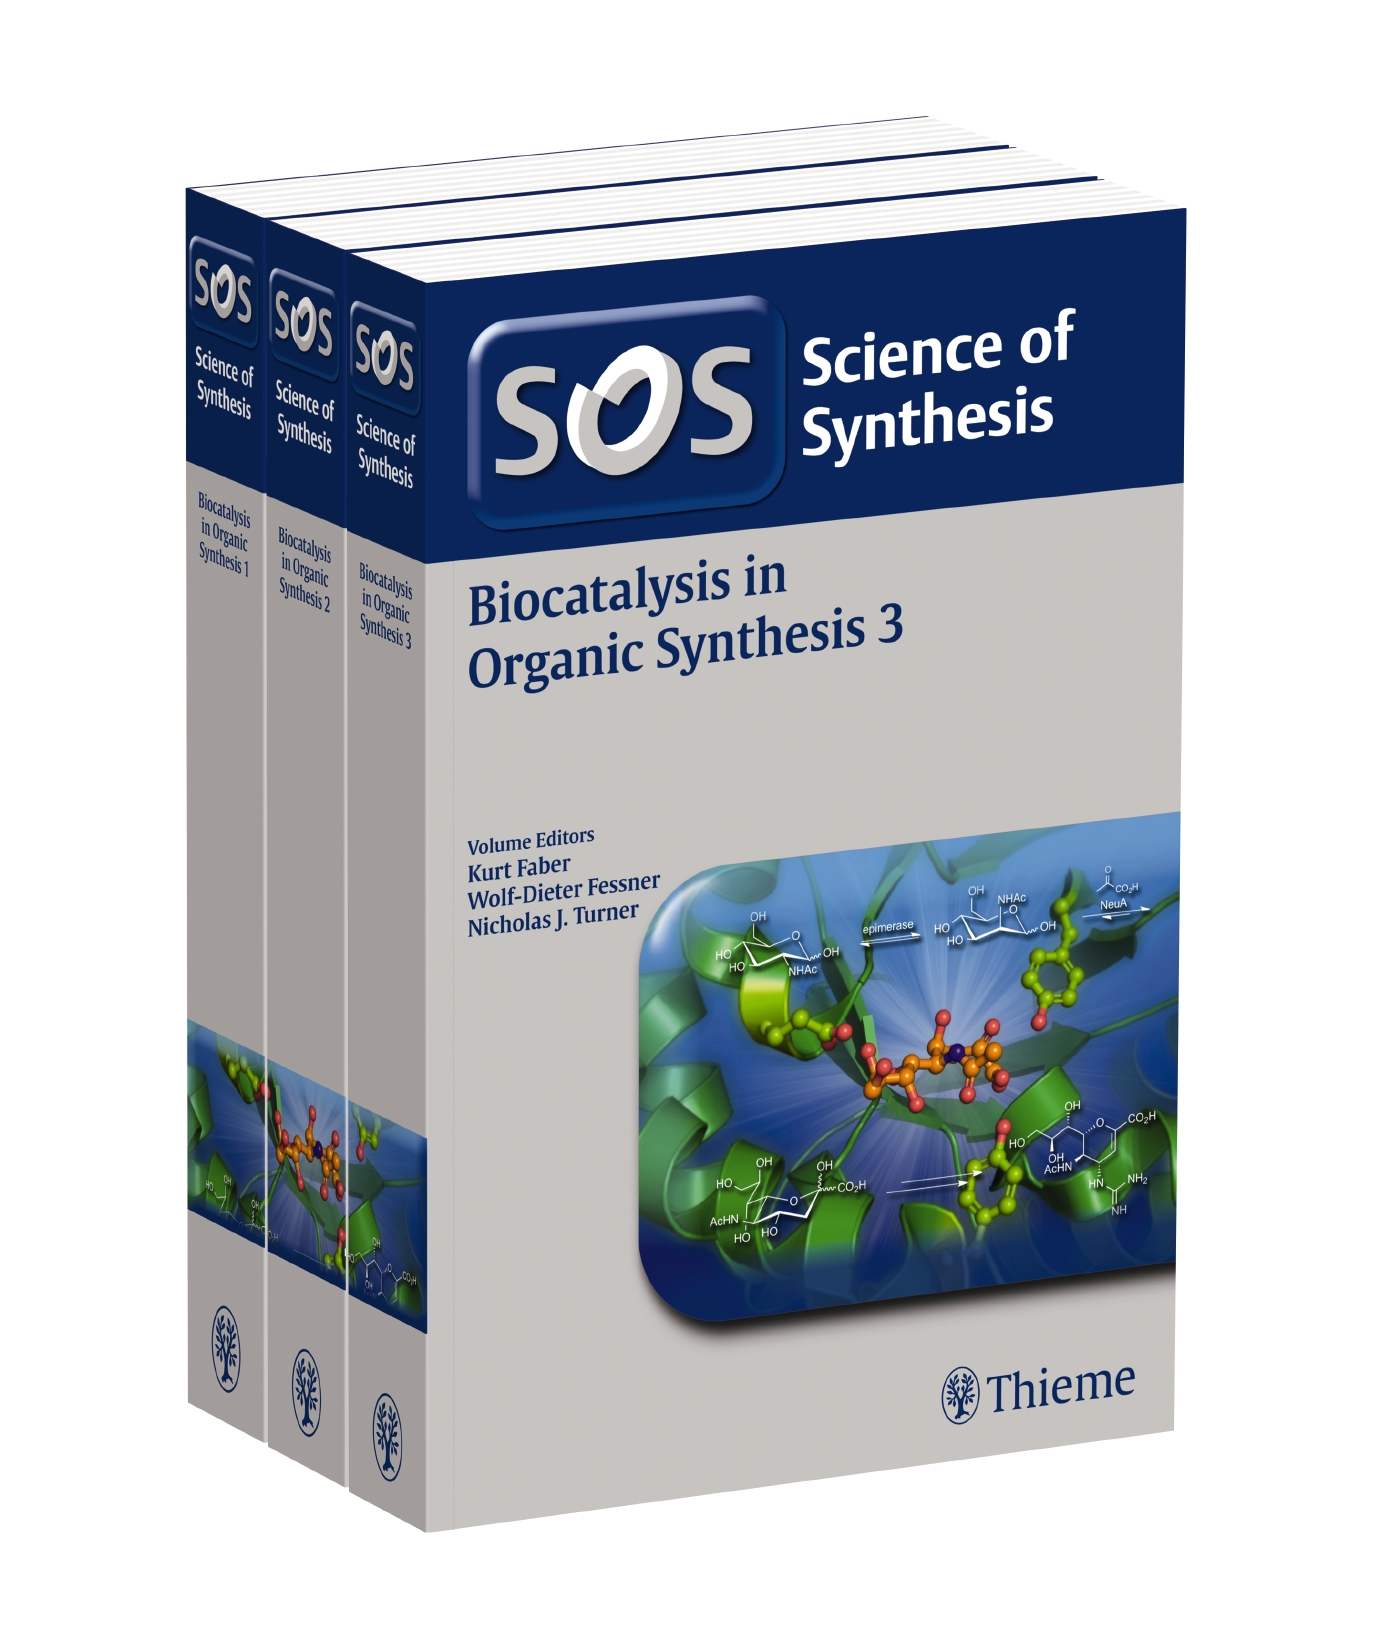 Science of Synthesis: Biocatalysis in Organic Synthesis